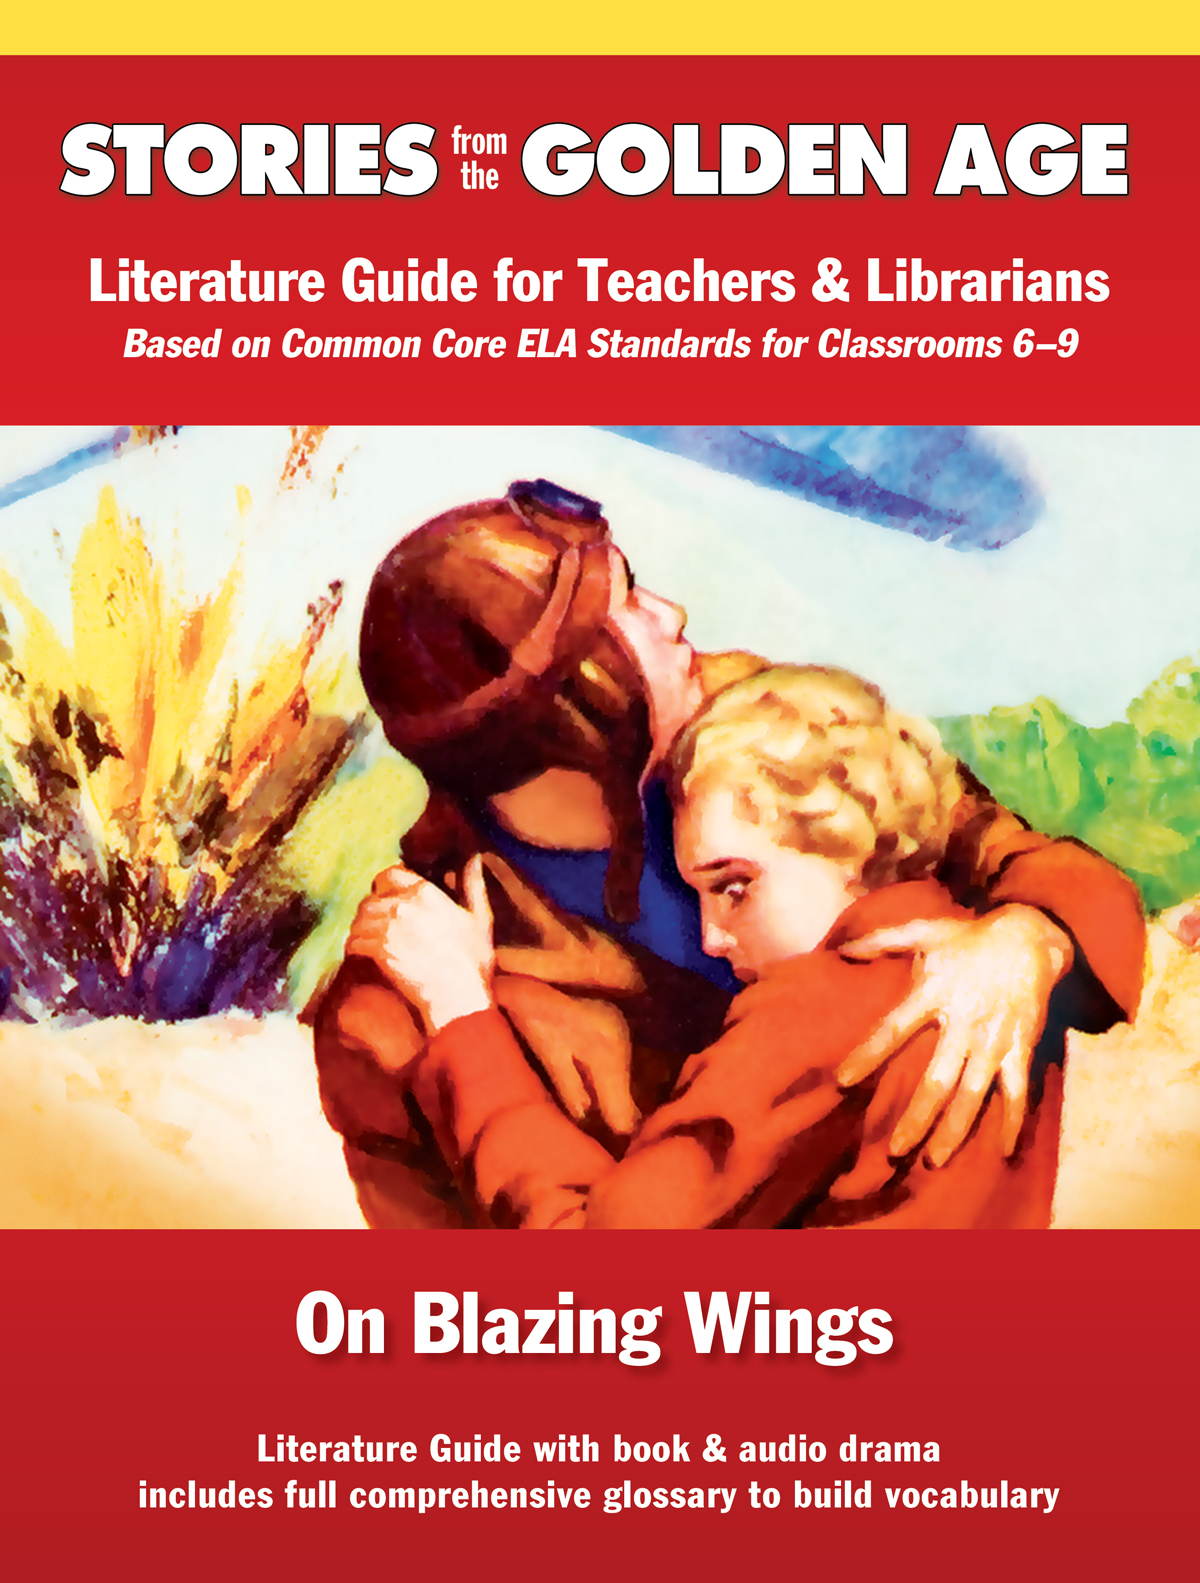 On Blazing Wings Literature Guide cover